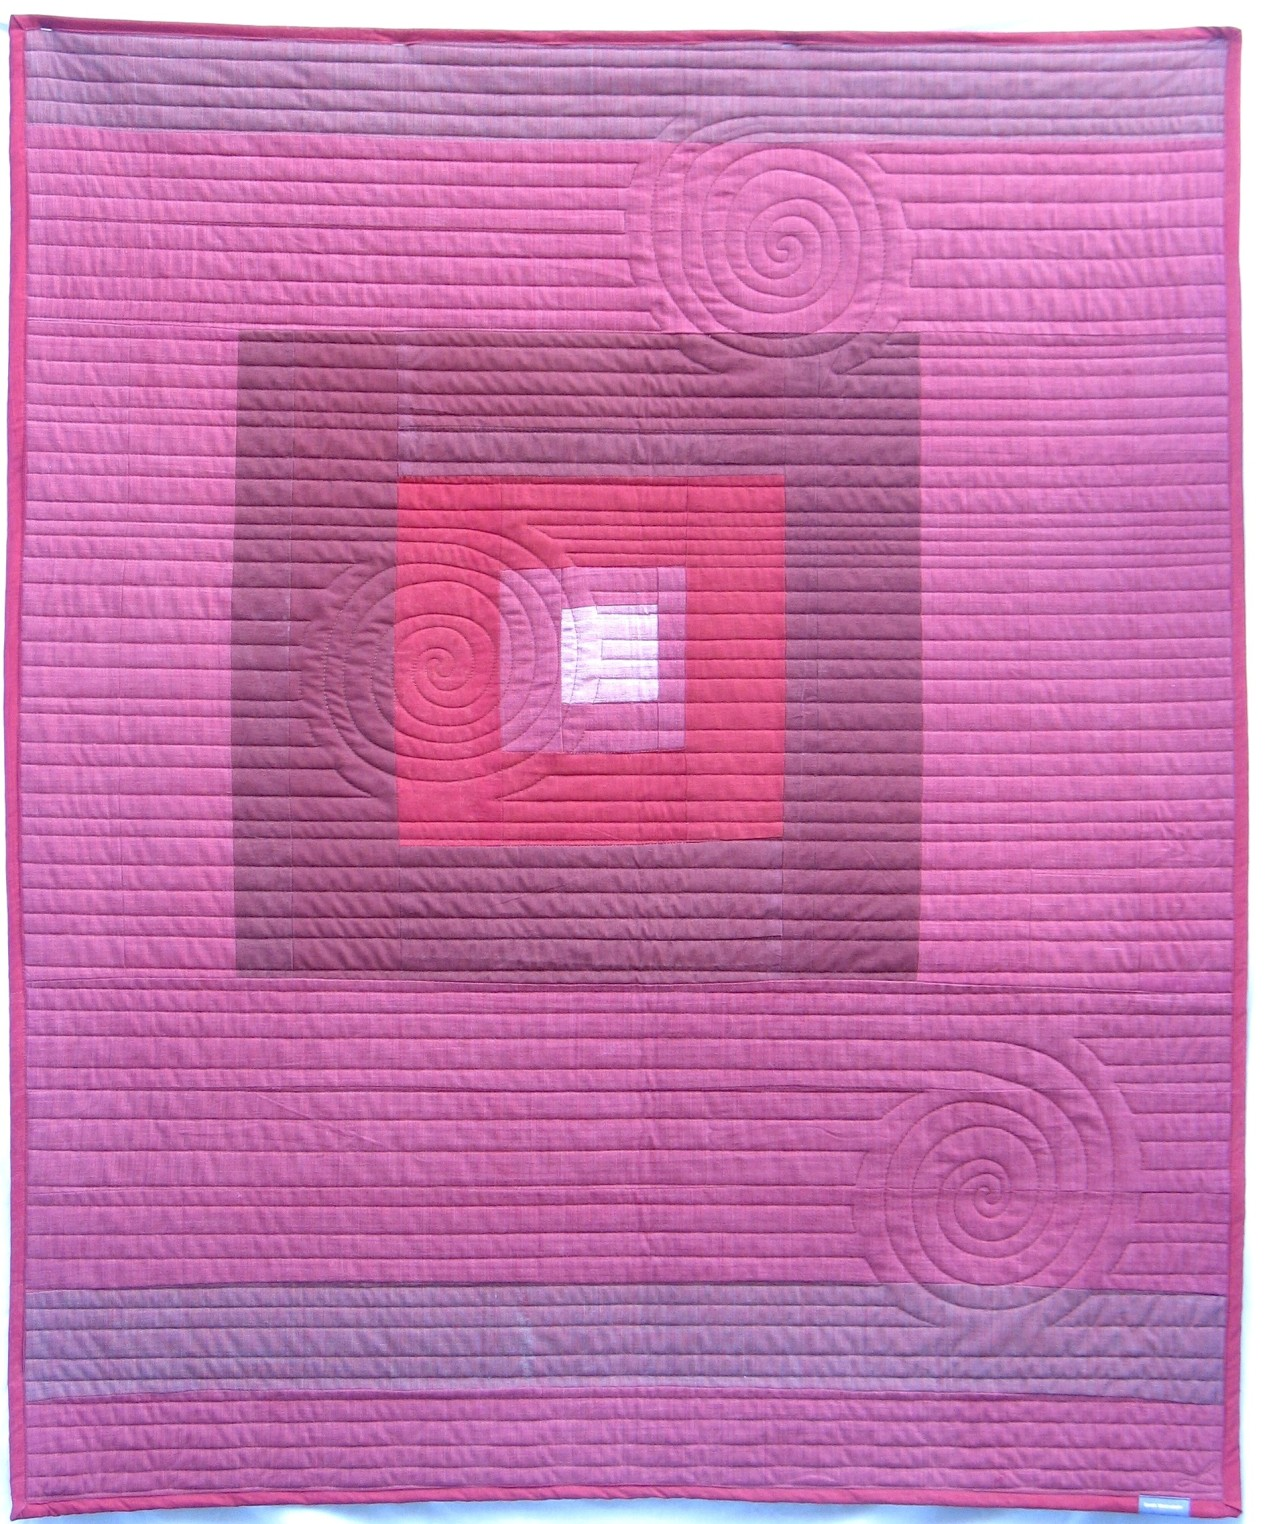 Leah_Weinstein_art_quilts_RedSquare